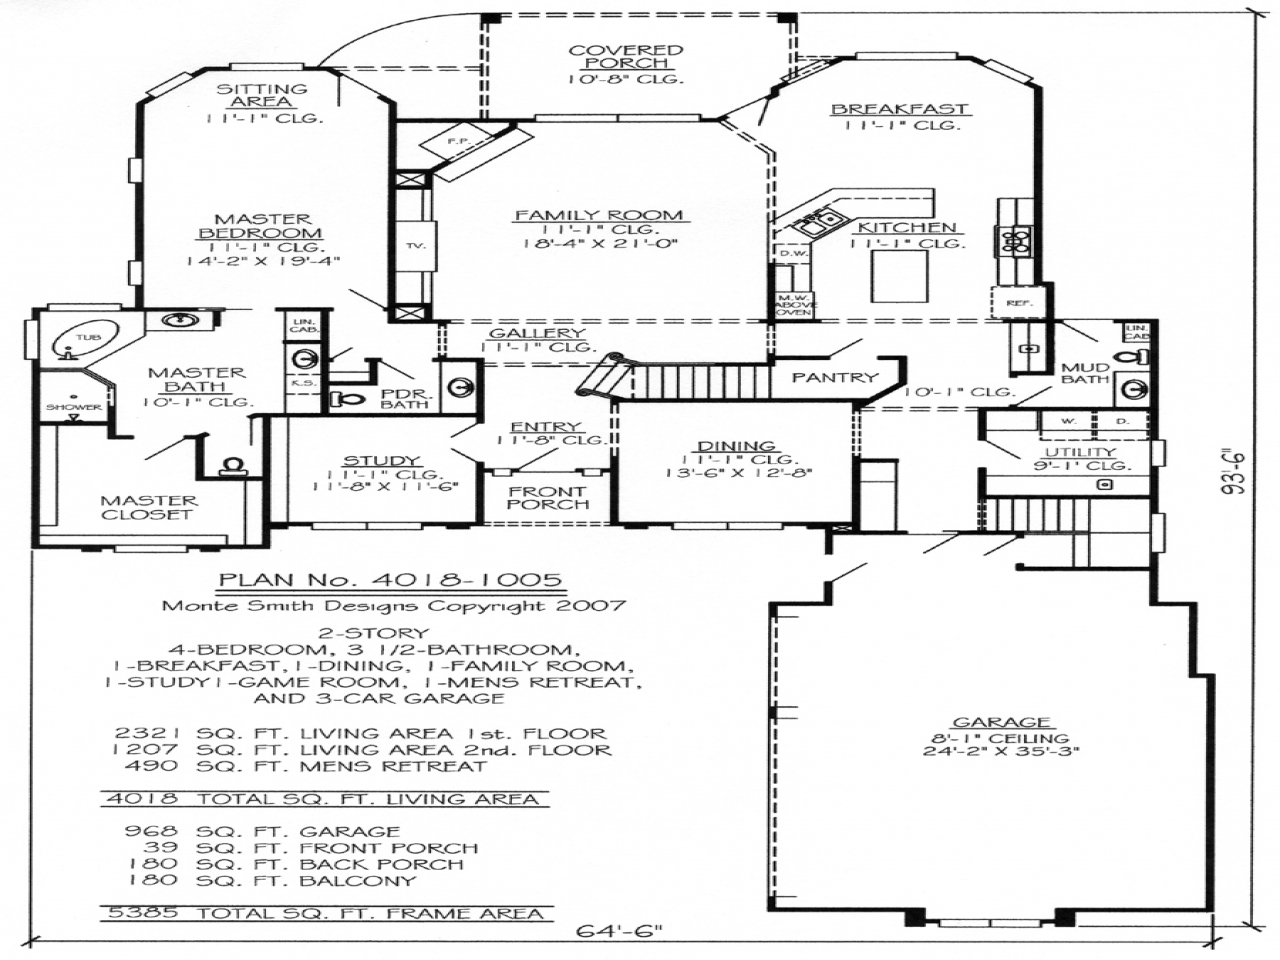 2 story house plans with loft custom 2 story house plans for 1 5 story house plans with loft